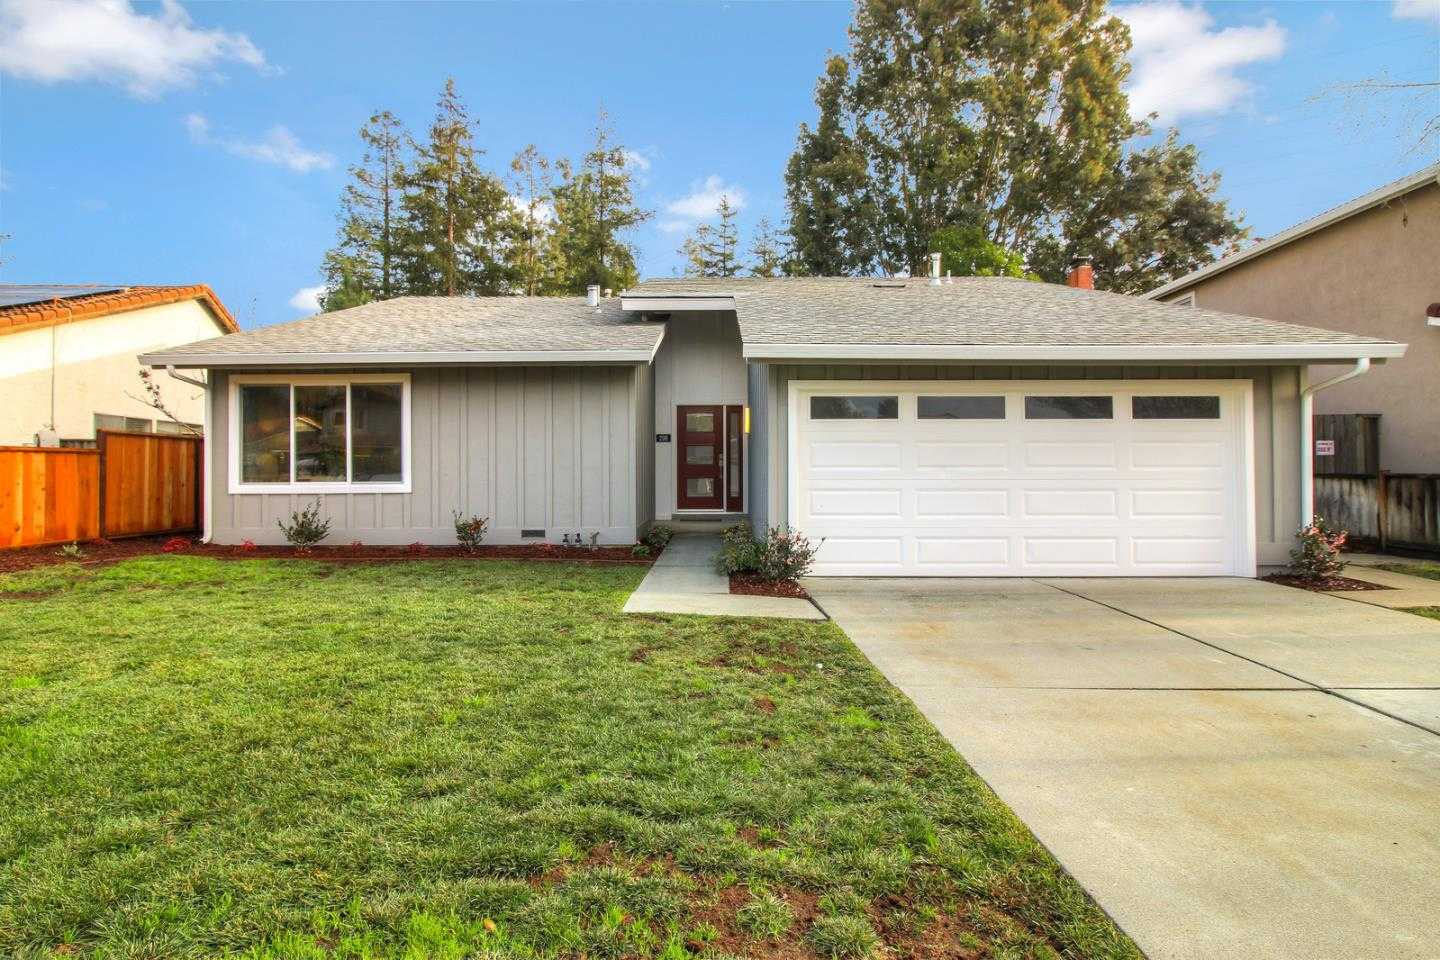 $899,000 - 4Br/2Ba -  for Sale in San Jose